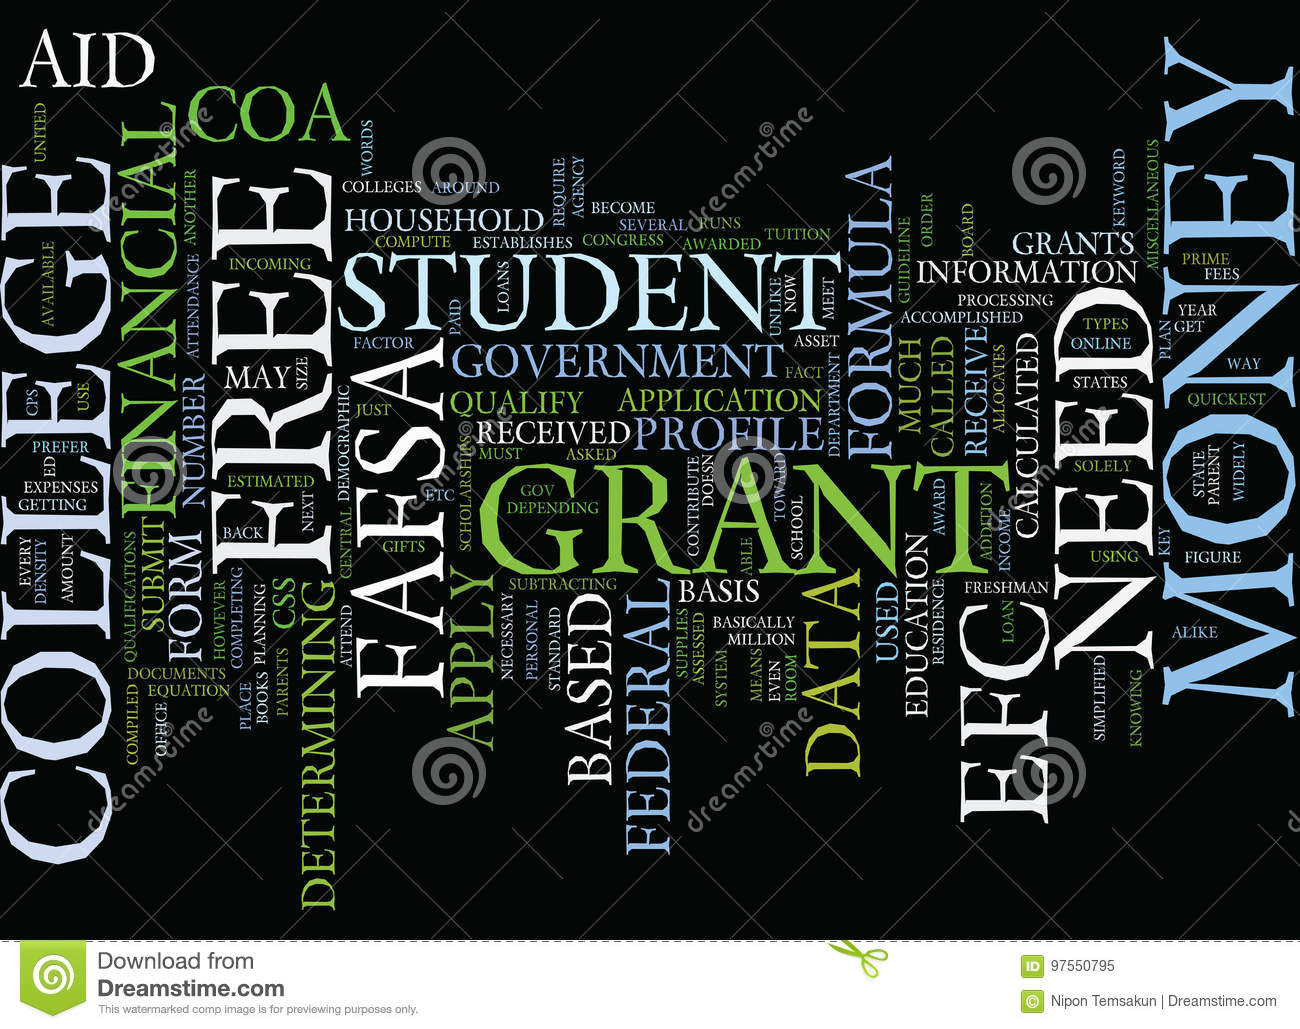 Grants For College >> Free Grant Money For College Word Cloud Concept Stock